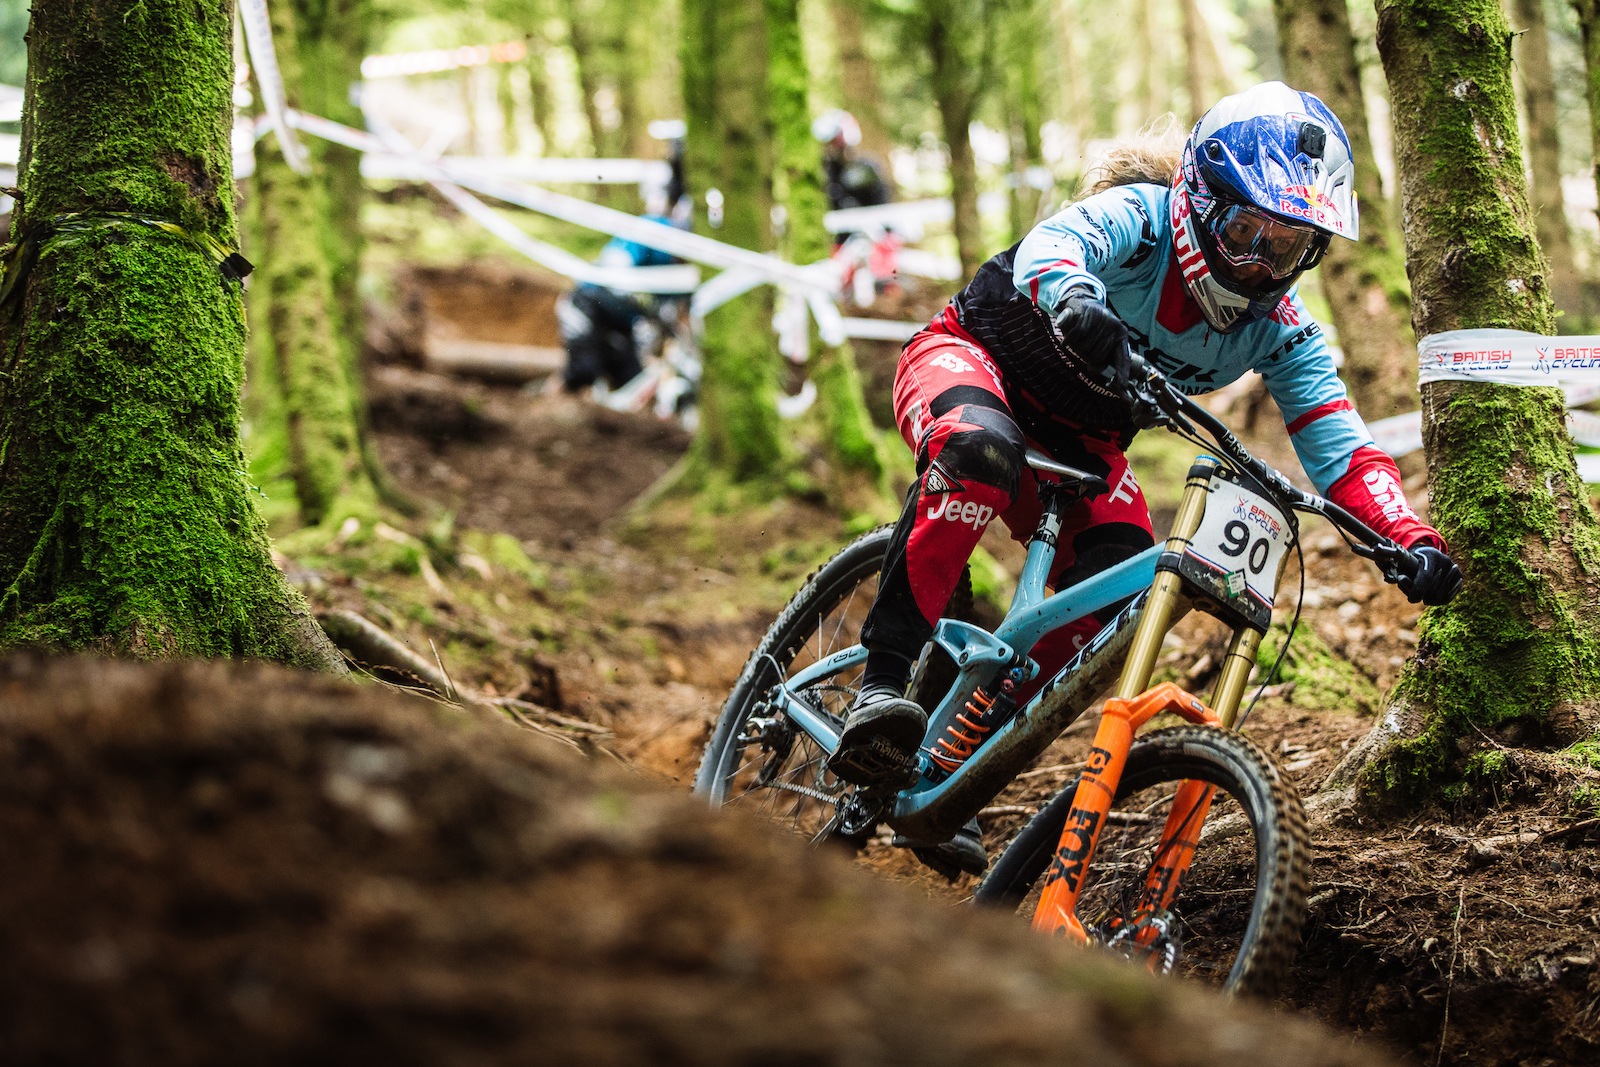 With Tahn e Seagrave closing the gap on Rachel Atherton s dominance at Lenzerheide she is riding with a point to prove on home turf. Riding the steep drop with more poise than most of the mens field she will be hard to beat on race day.